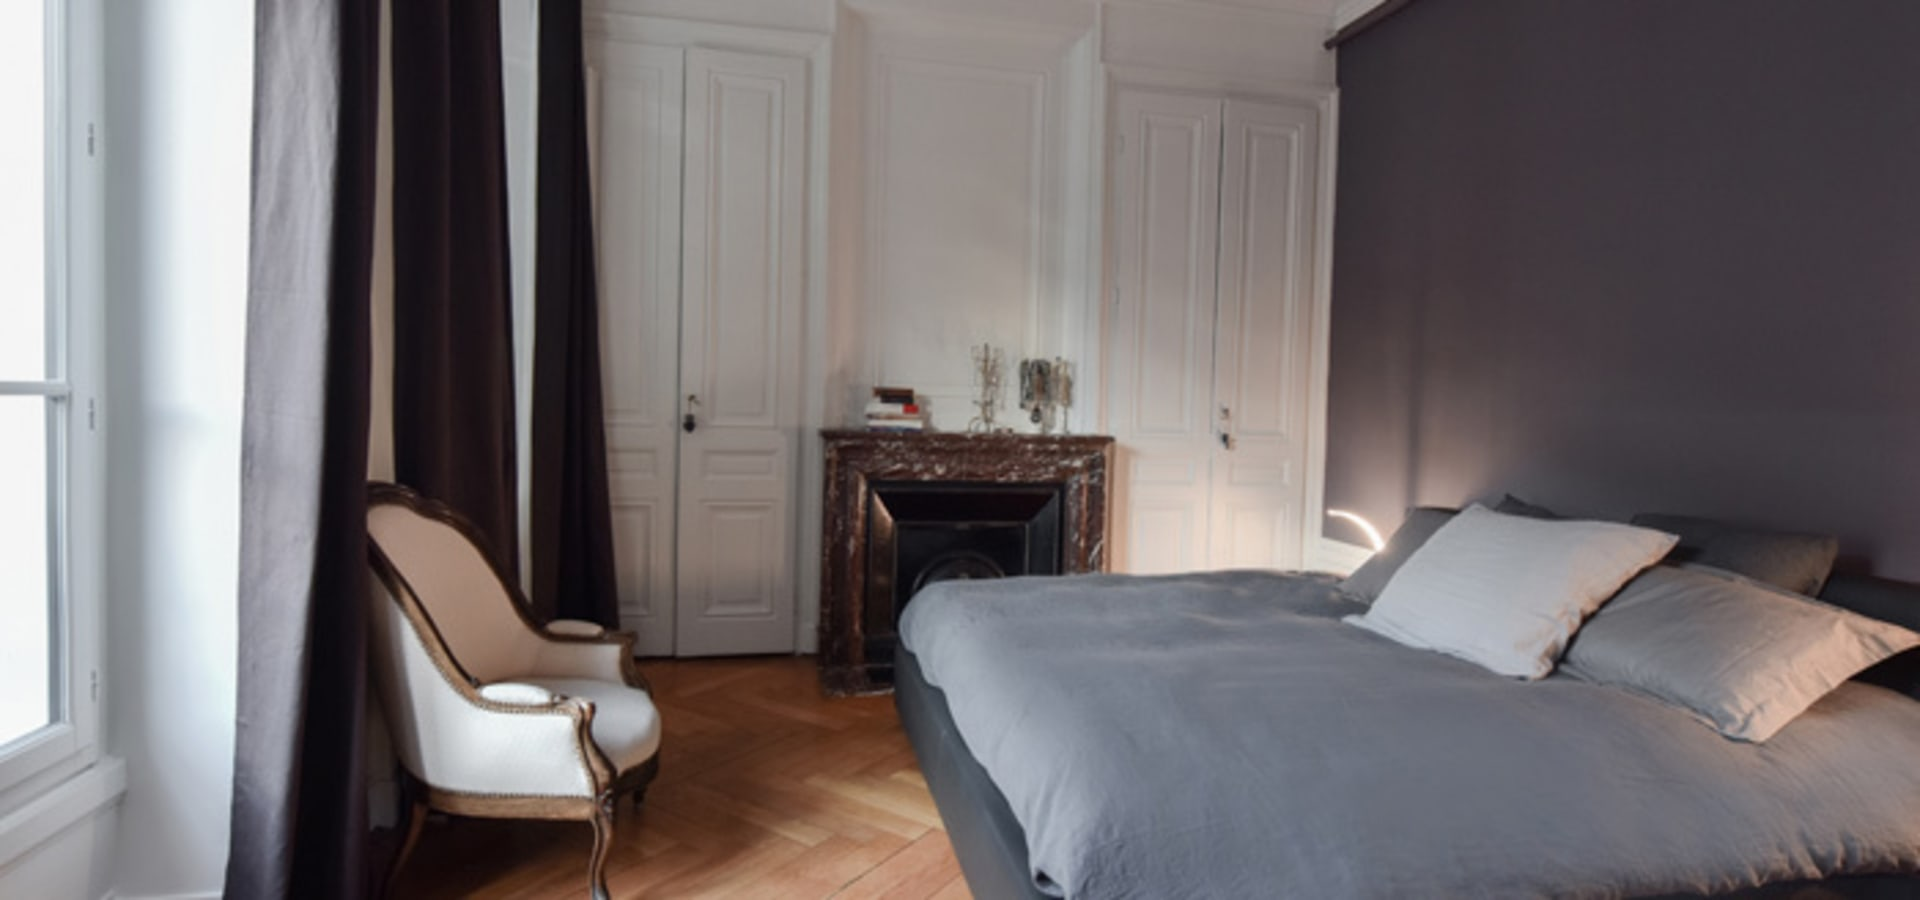 am nagement et d coration d 39 une maison gen ve di marion lano architecte d 39 int rieur homify. Black Bedroom Furniture Sets. Home Design Ideas